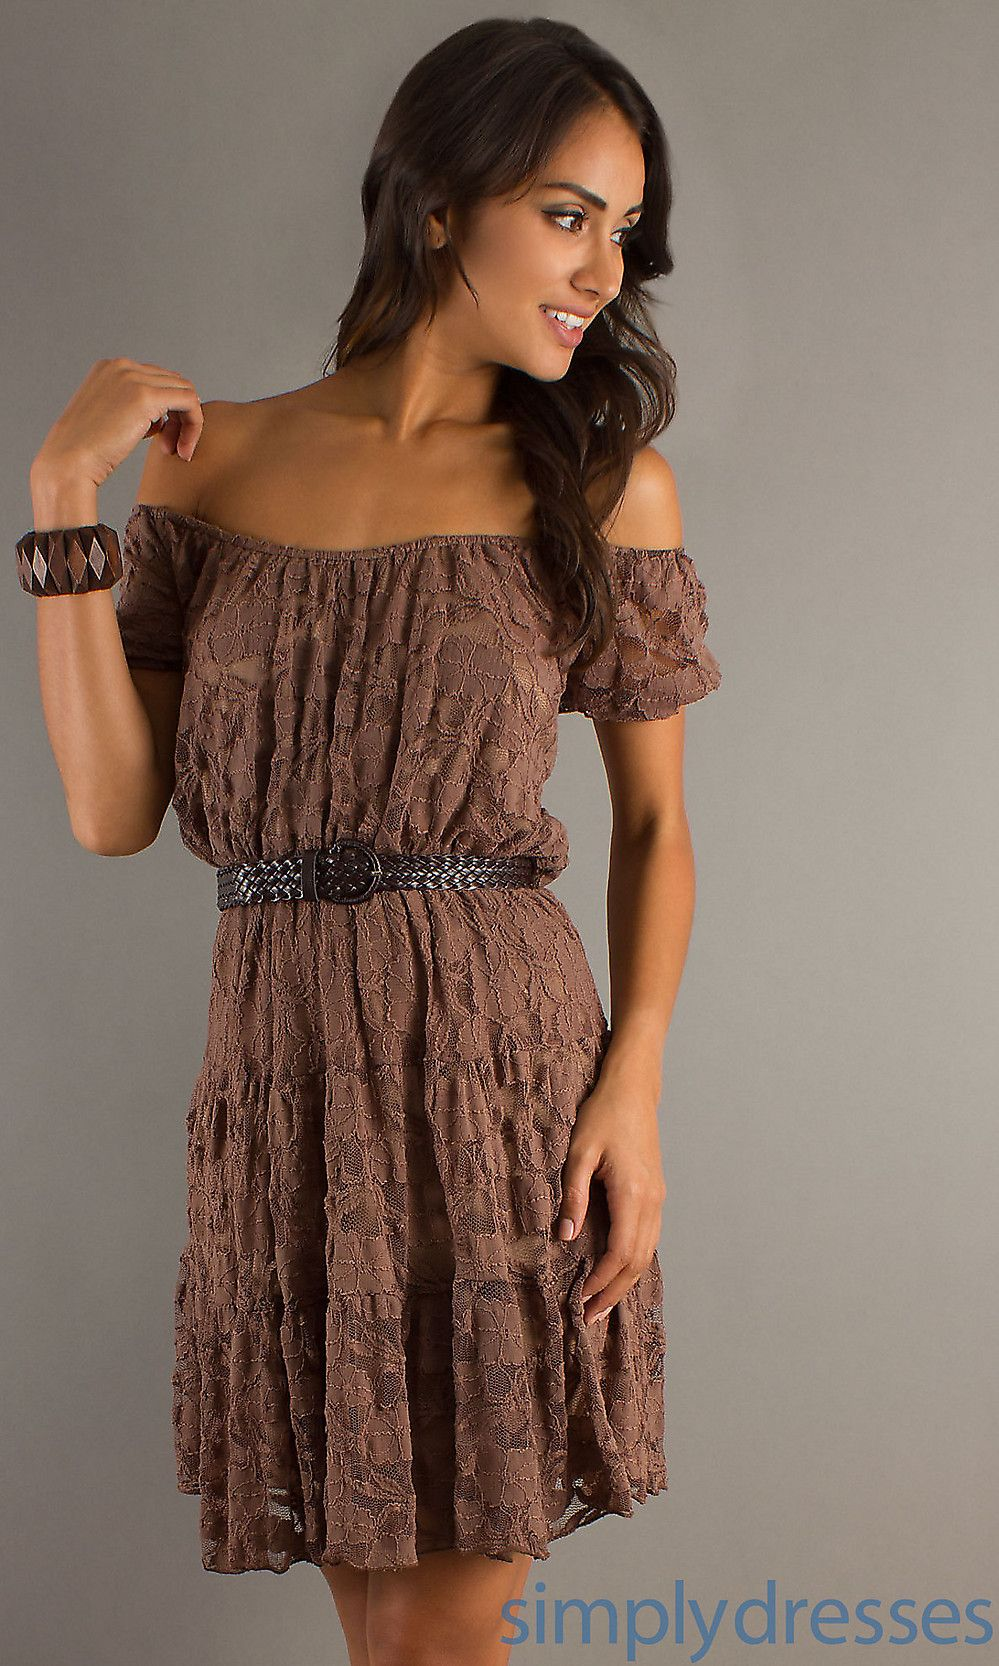 1000  images about Lace dresses on Pinterest | Brown belt, Lace ...